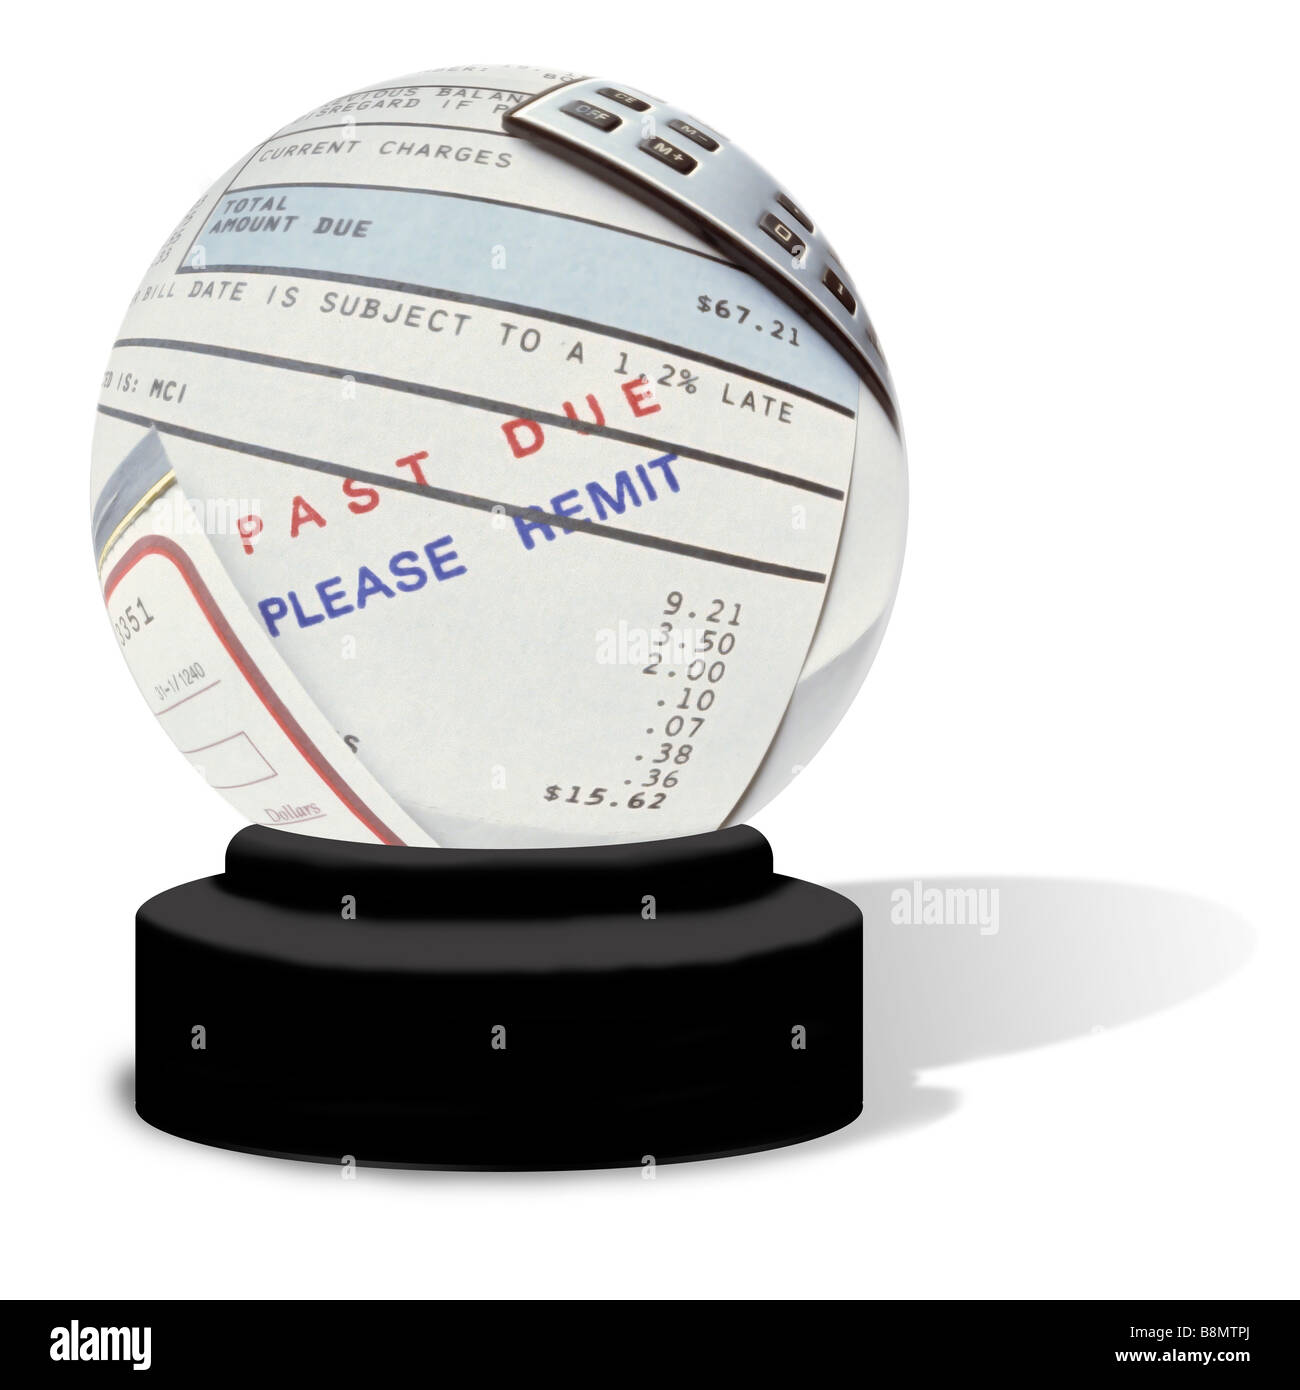 A crystal ball on a white background The globe contains an unpaid bill with Past Due Please Remit stamped on it - Stock Image